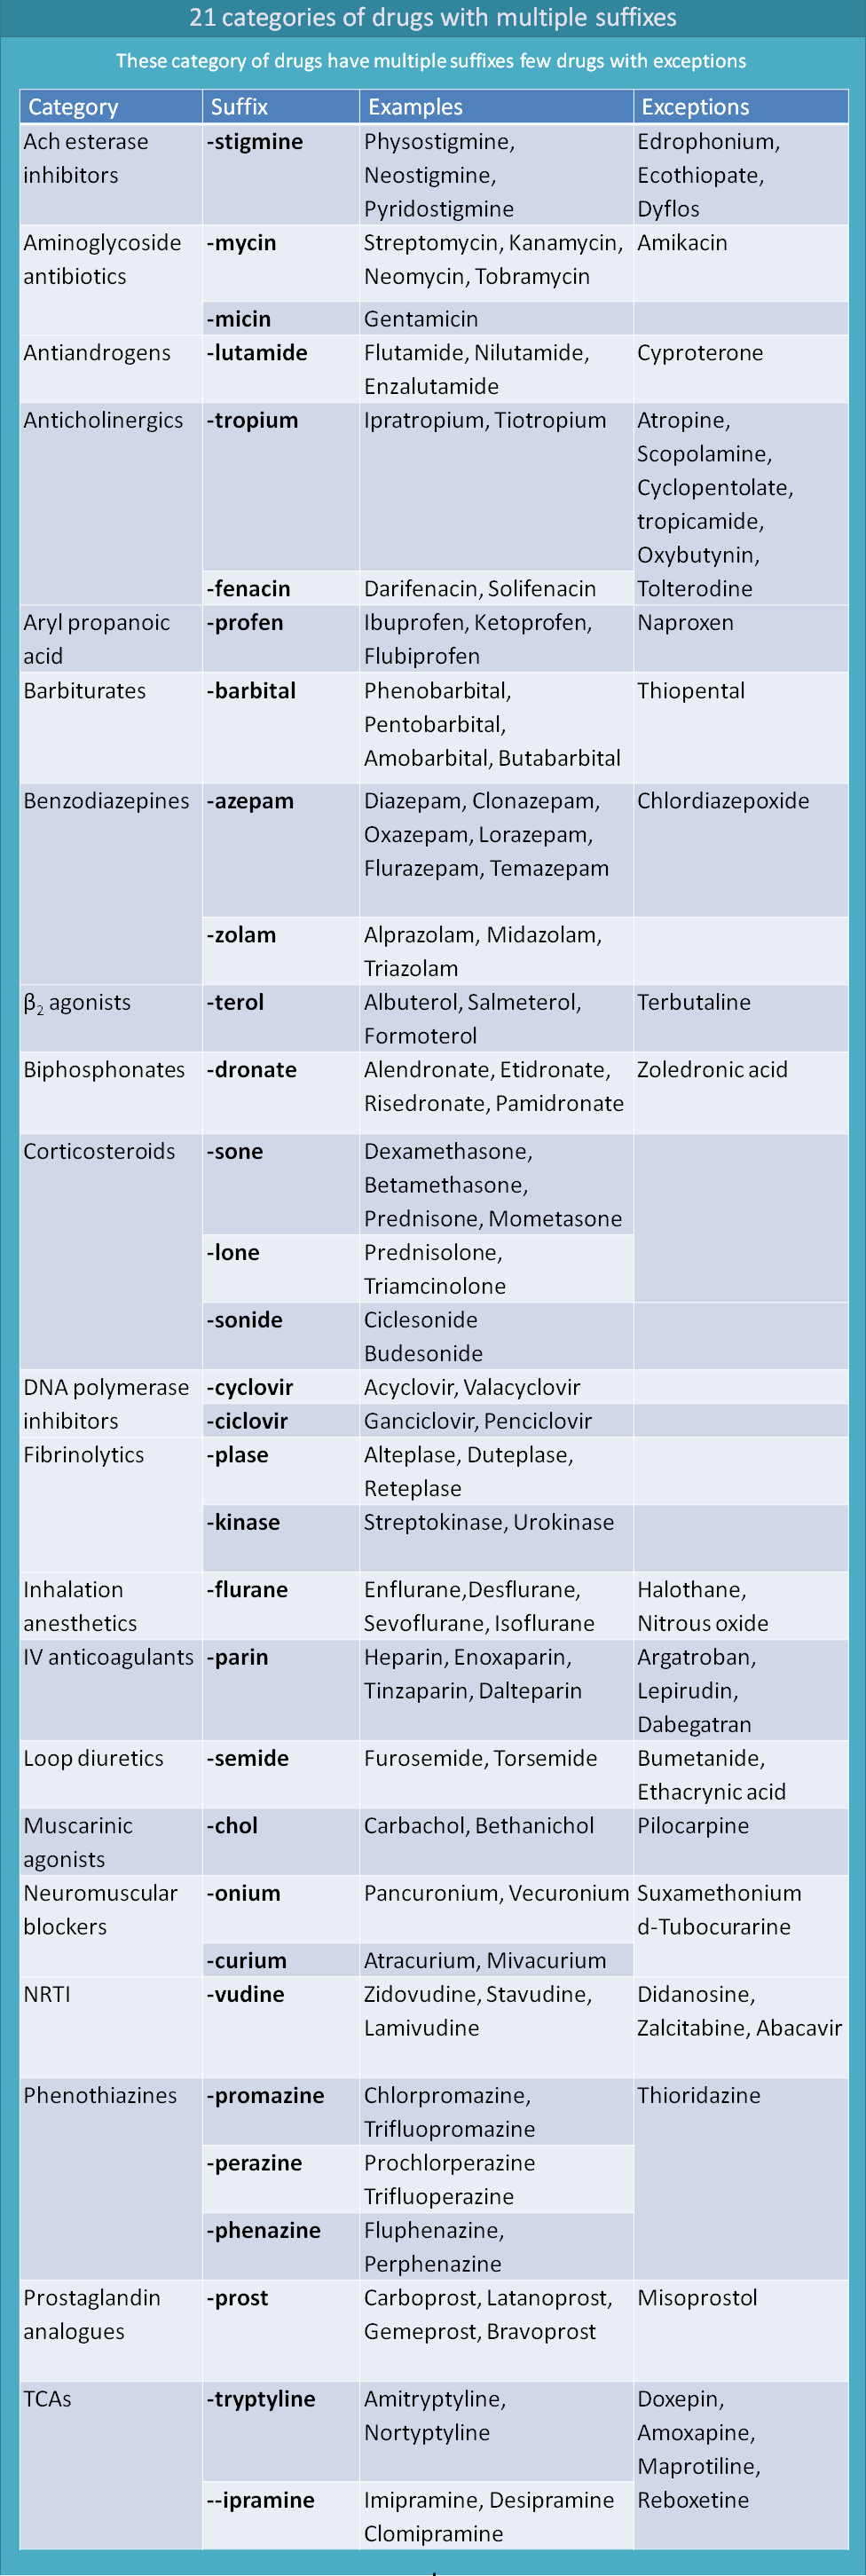 21 category of drugs with multiple suffixes